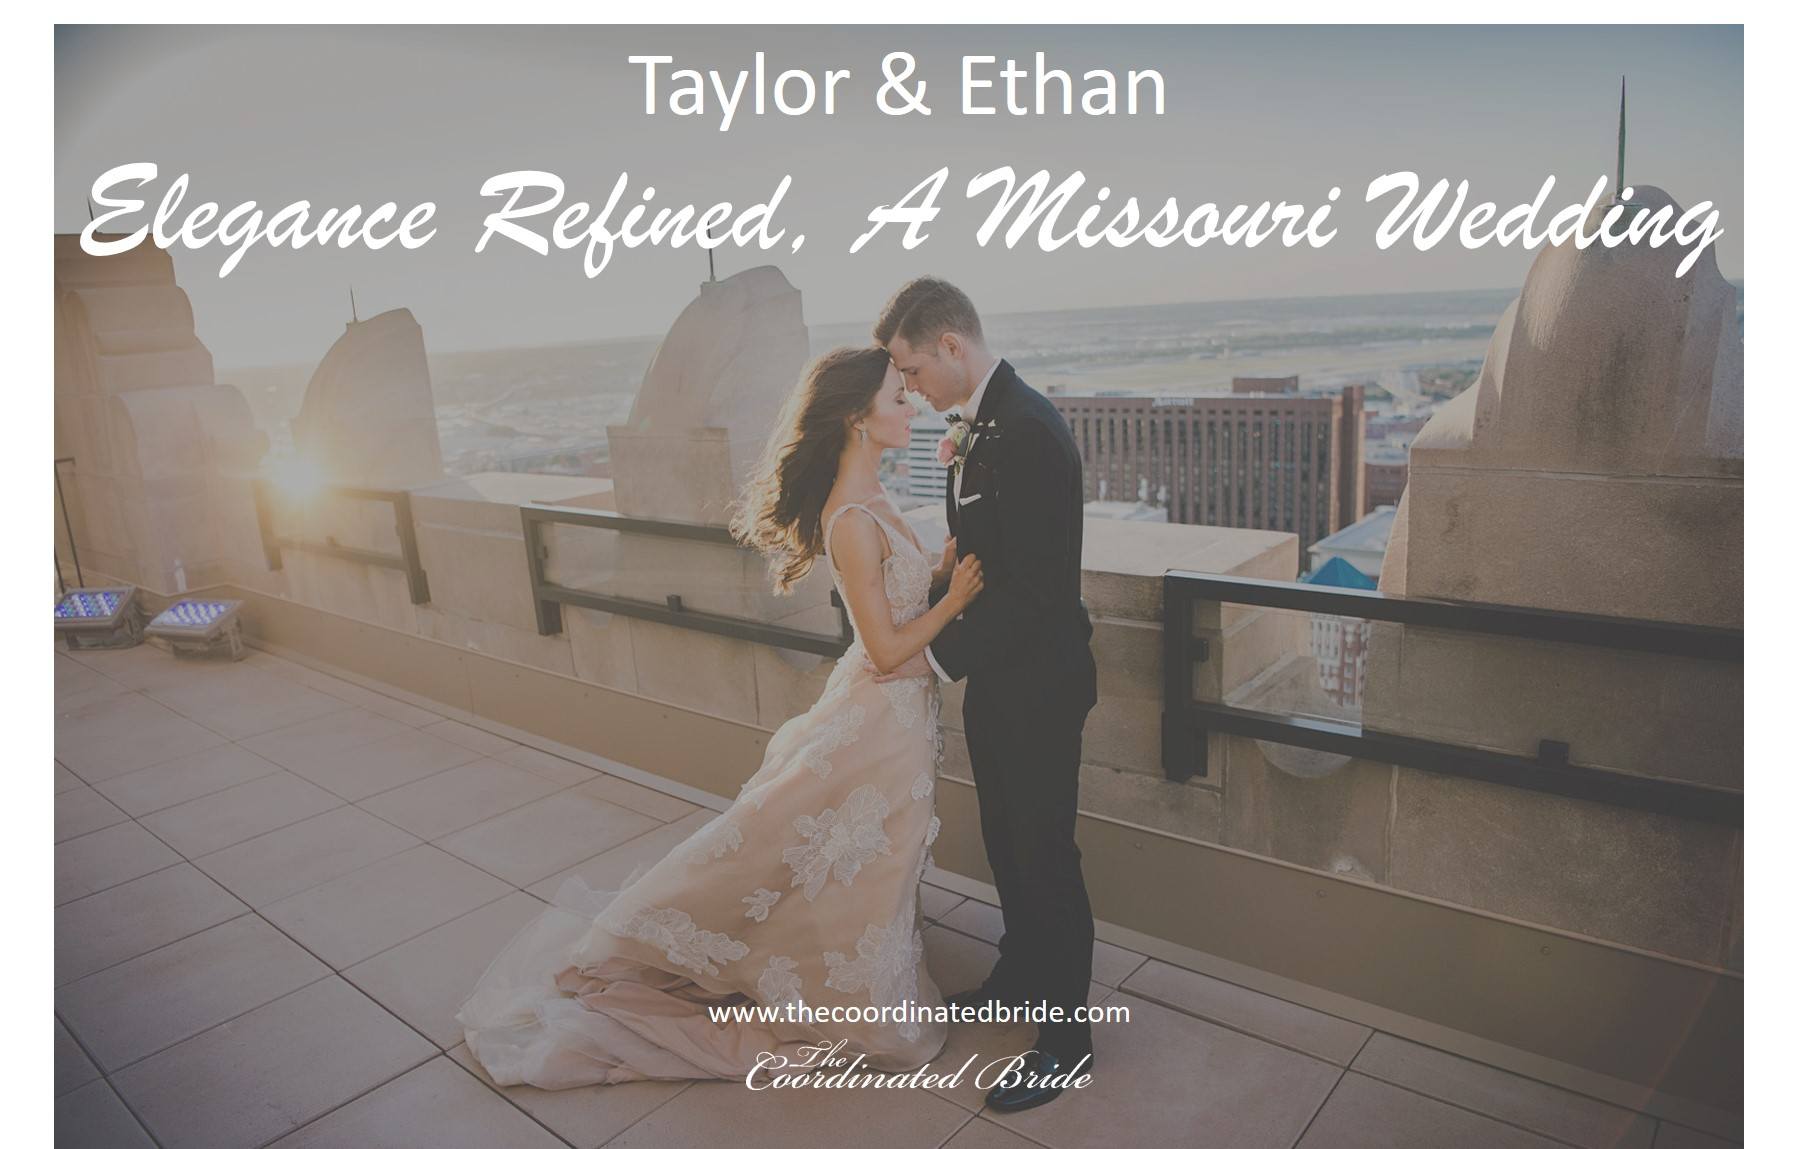 Elegance Refined, A Grand Kansas City, MO Wedding with a Large Wedding Party